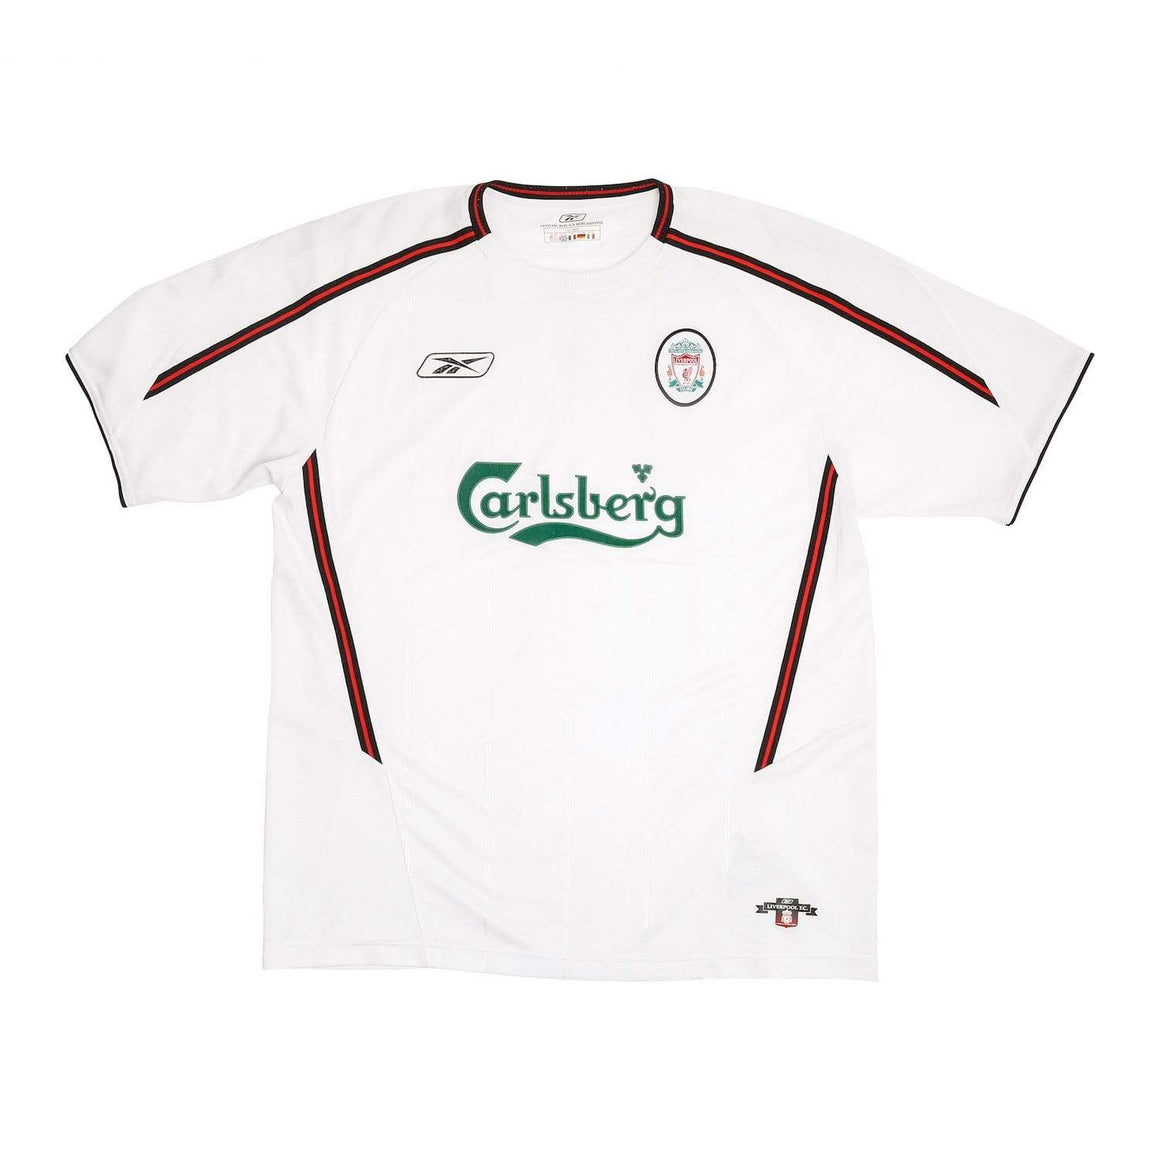 2002-03 Liverpool away football shirt L (Excellent) - Football Shirt Collective